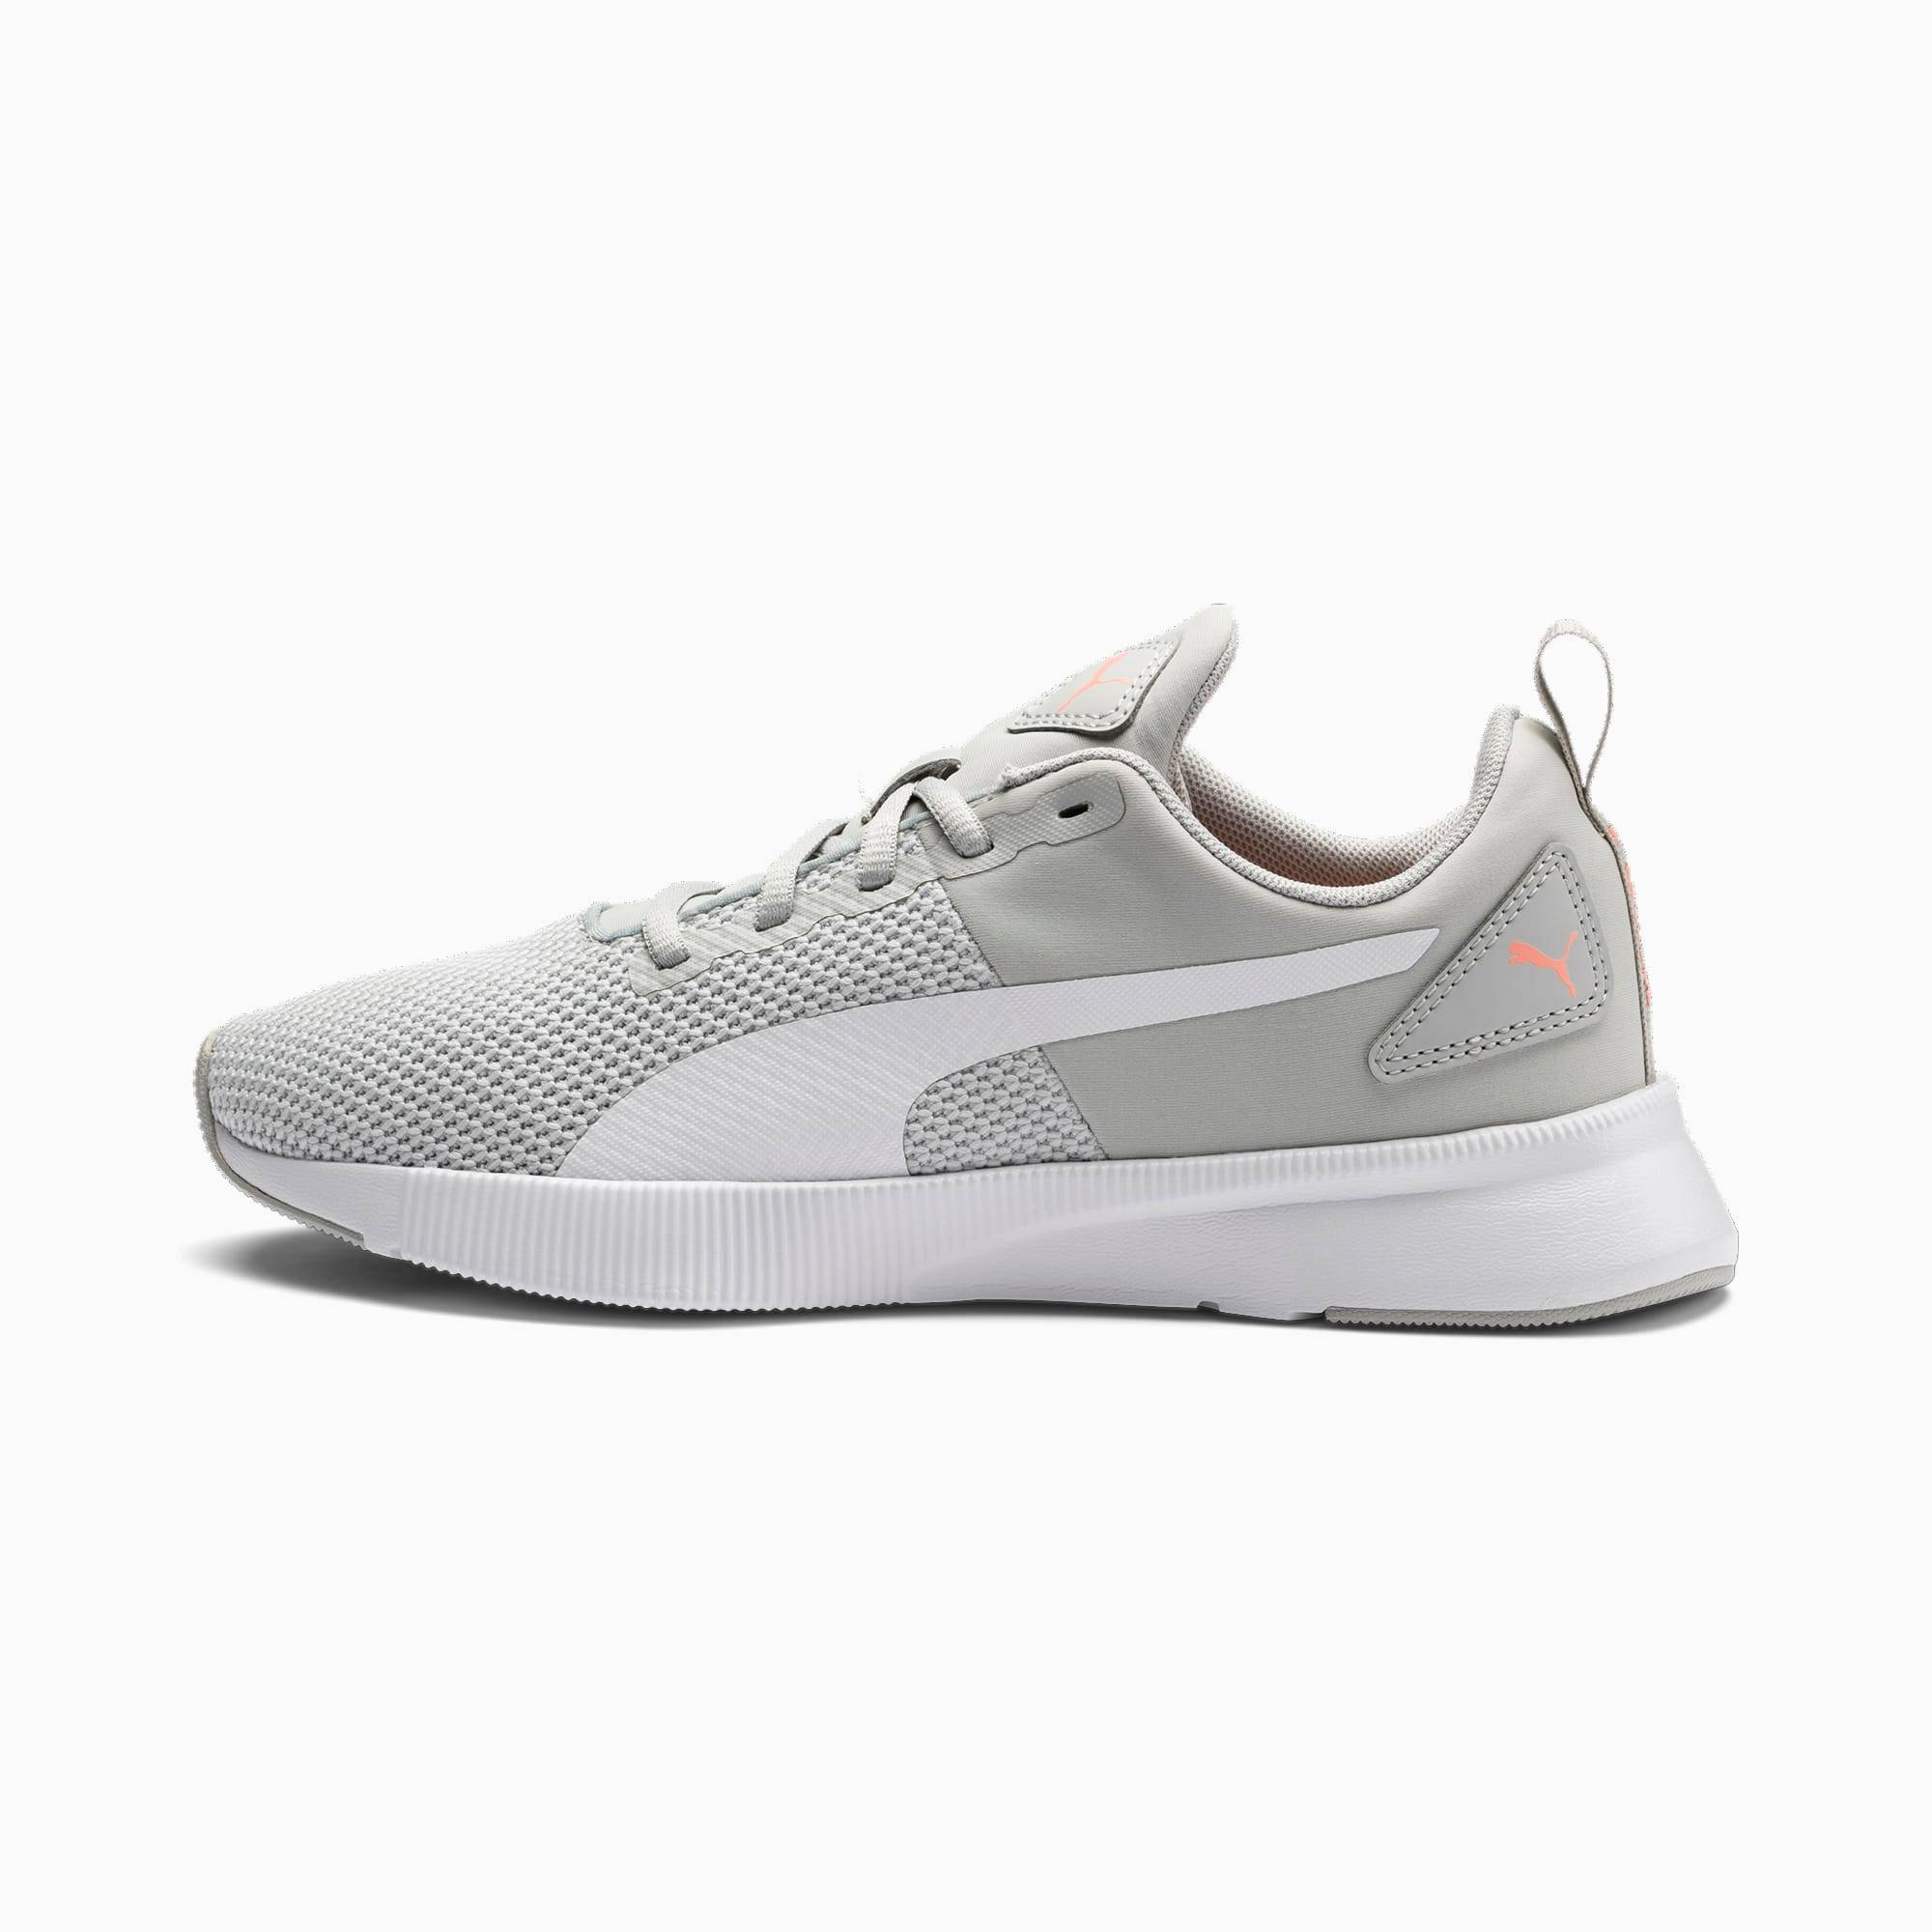 PUMA Chaussure de course Flyer Runner, Blanc/Rose/Gris, Taille 44.5, Chaussures